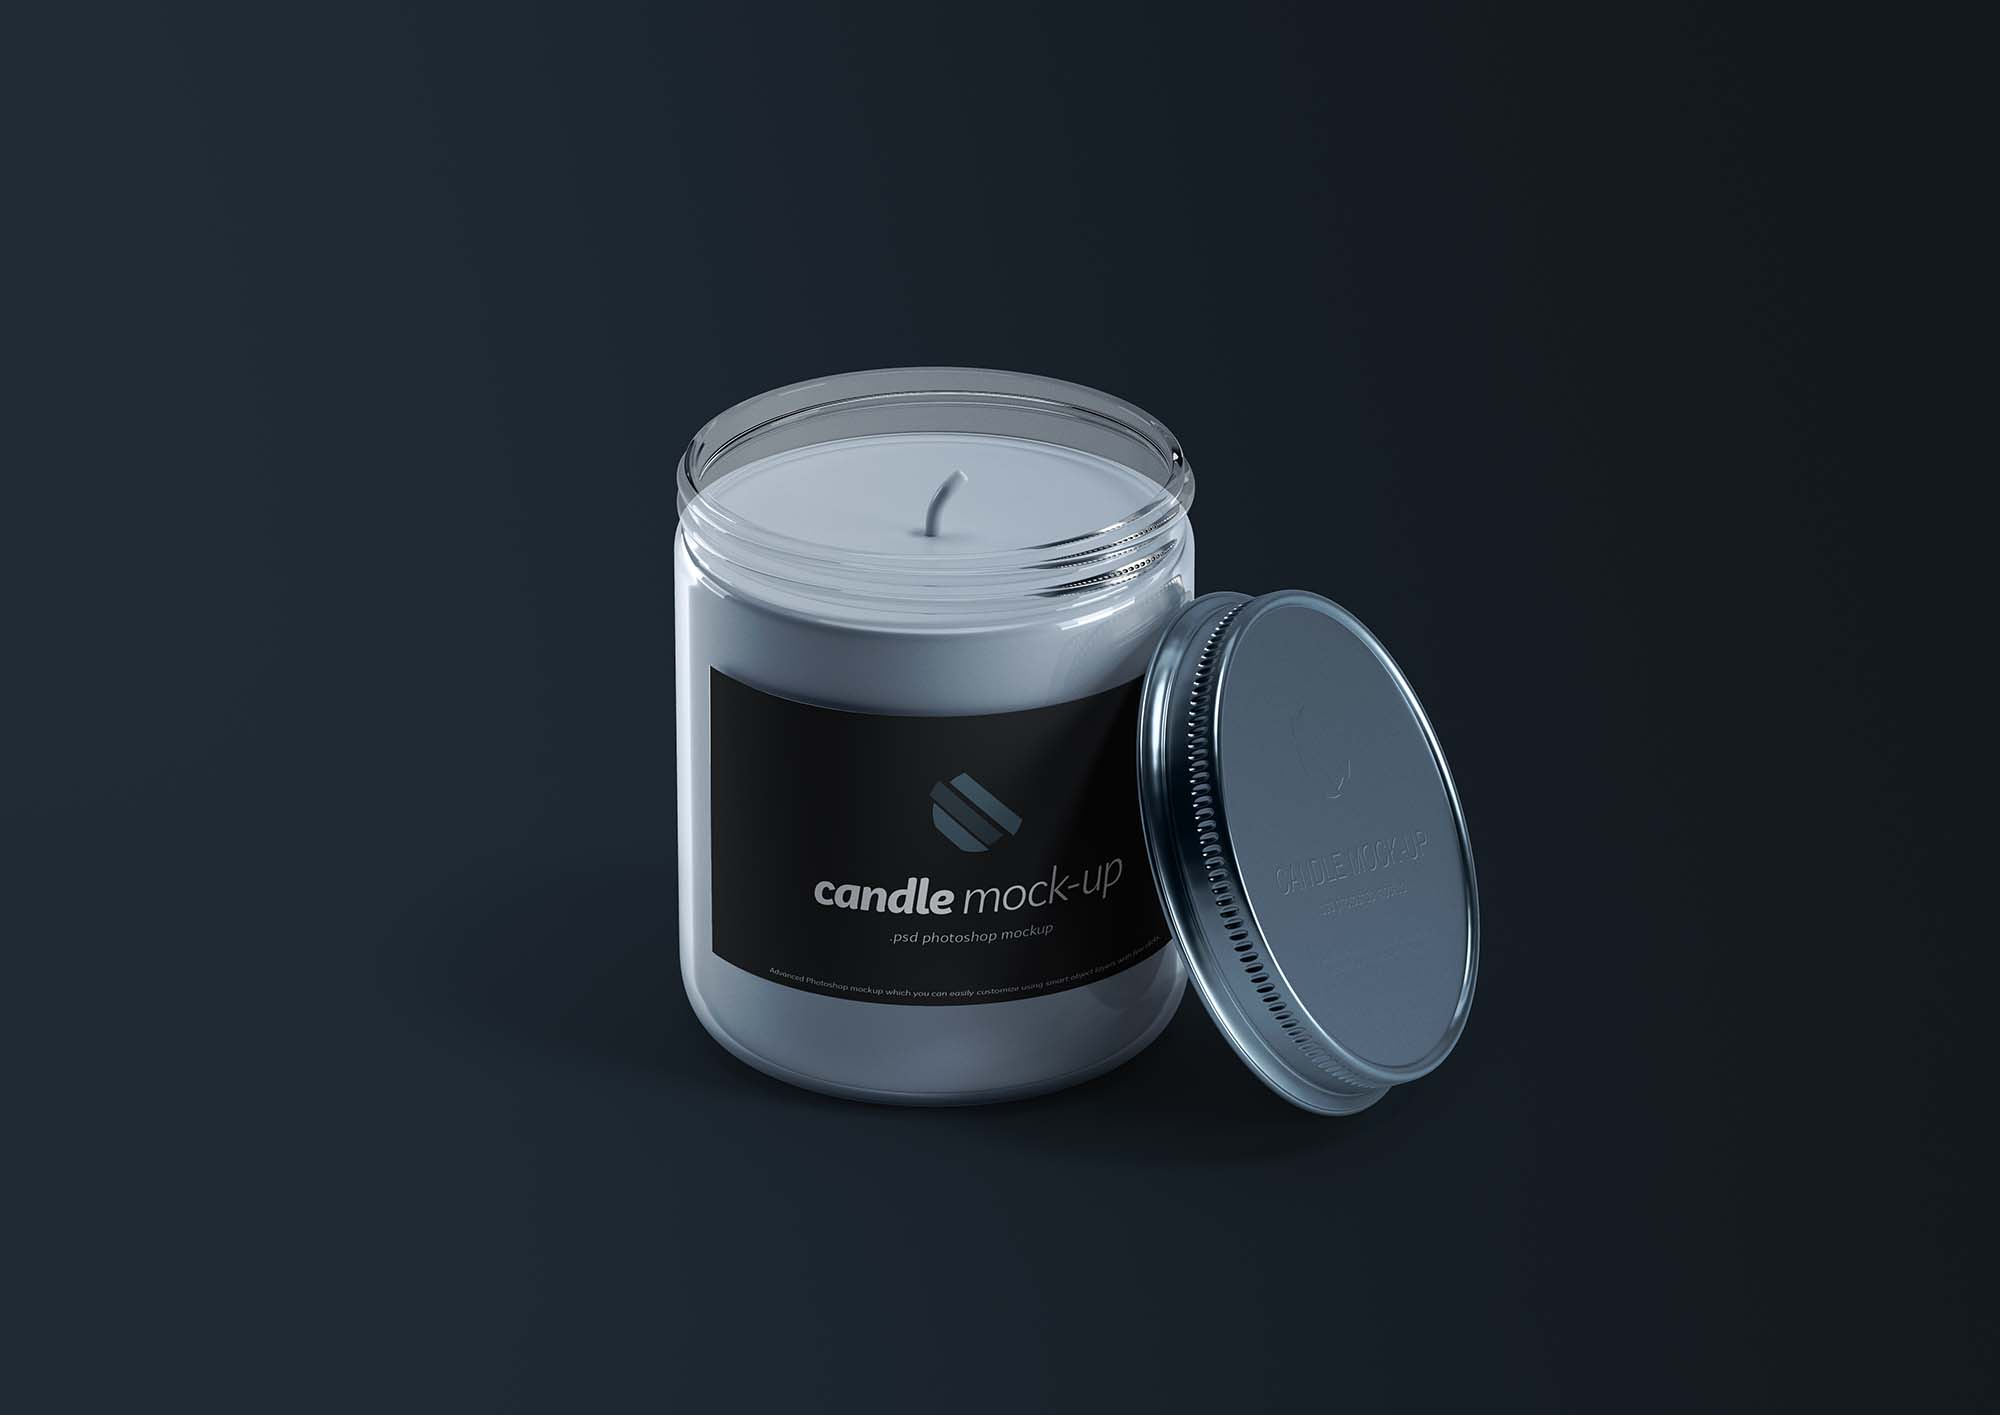 Branded Candle Mockup 2